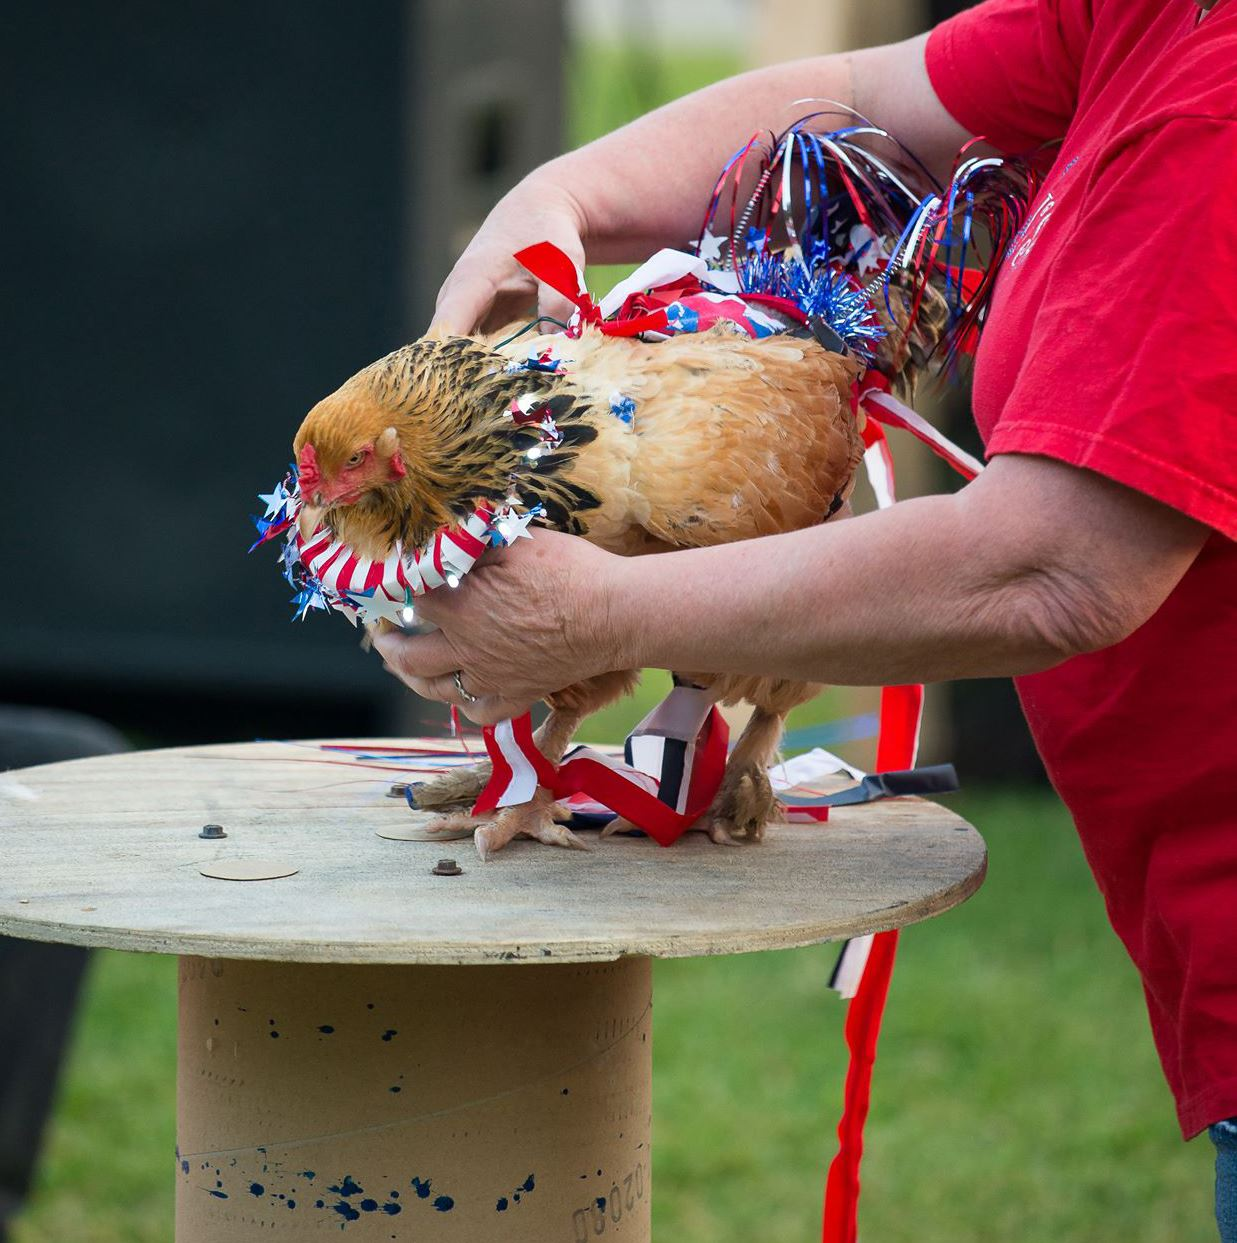 Poultry0610_BrahmaHen1-1 Frieda, a Golden Brahma hen owned by Debra Lynn Kimball, sported patriotic colors.